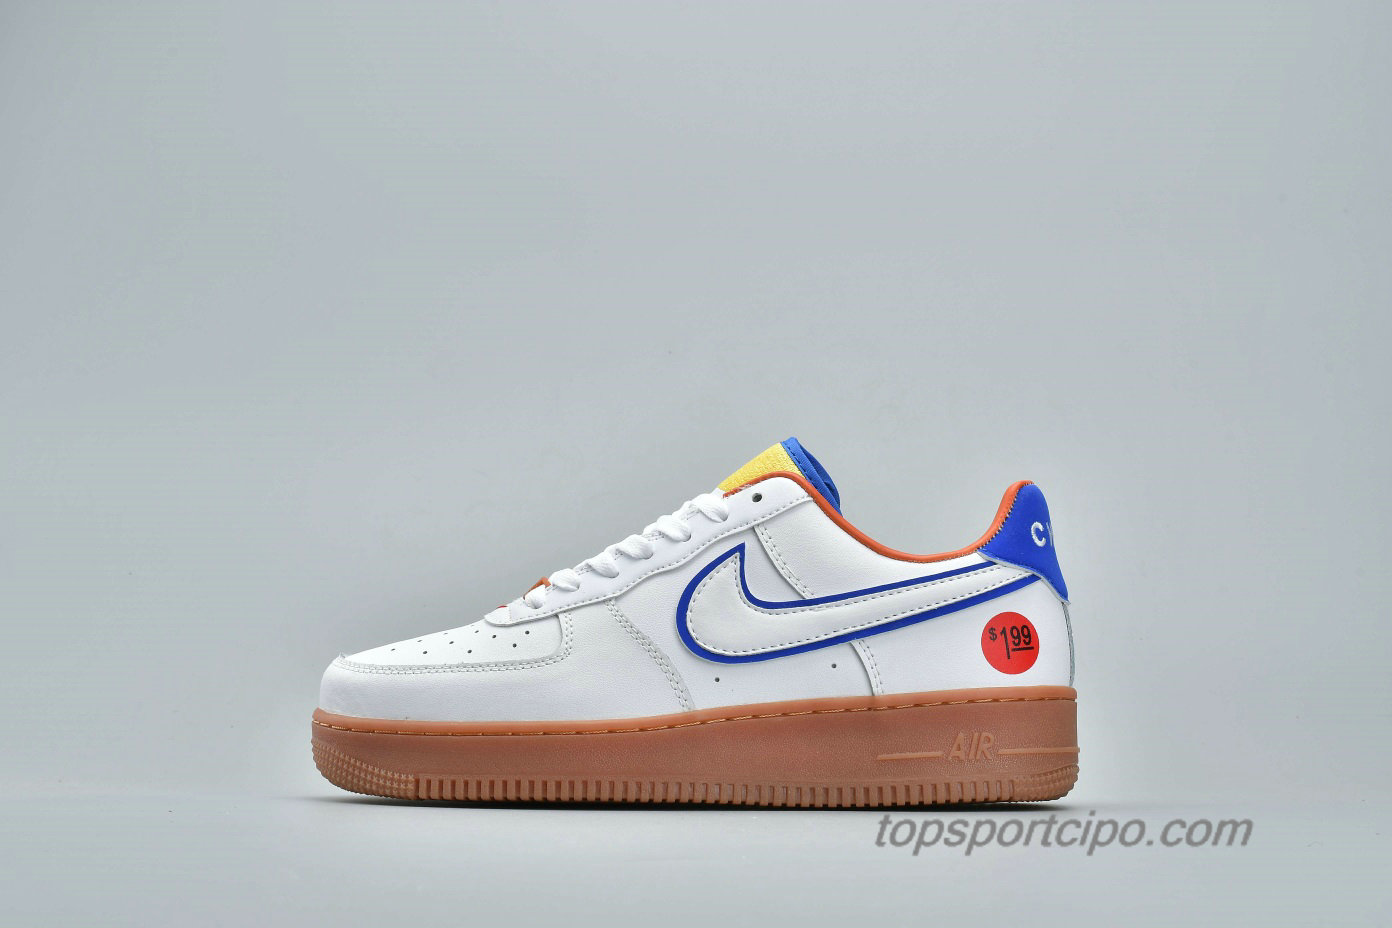 Nike Air Force 1 Low UPSTEP WONDER BREAD Unisex Cipő 653774-660 (Fehér / Kék)